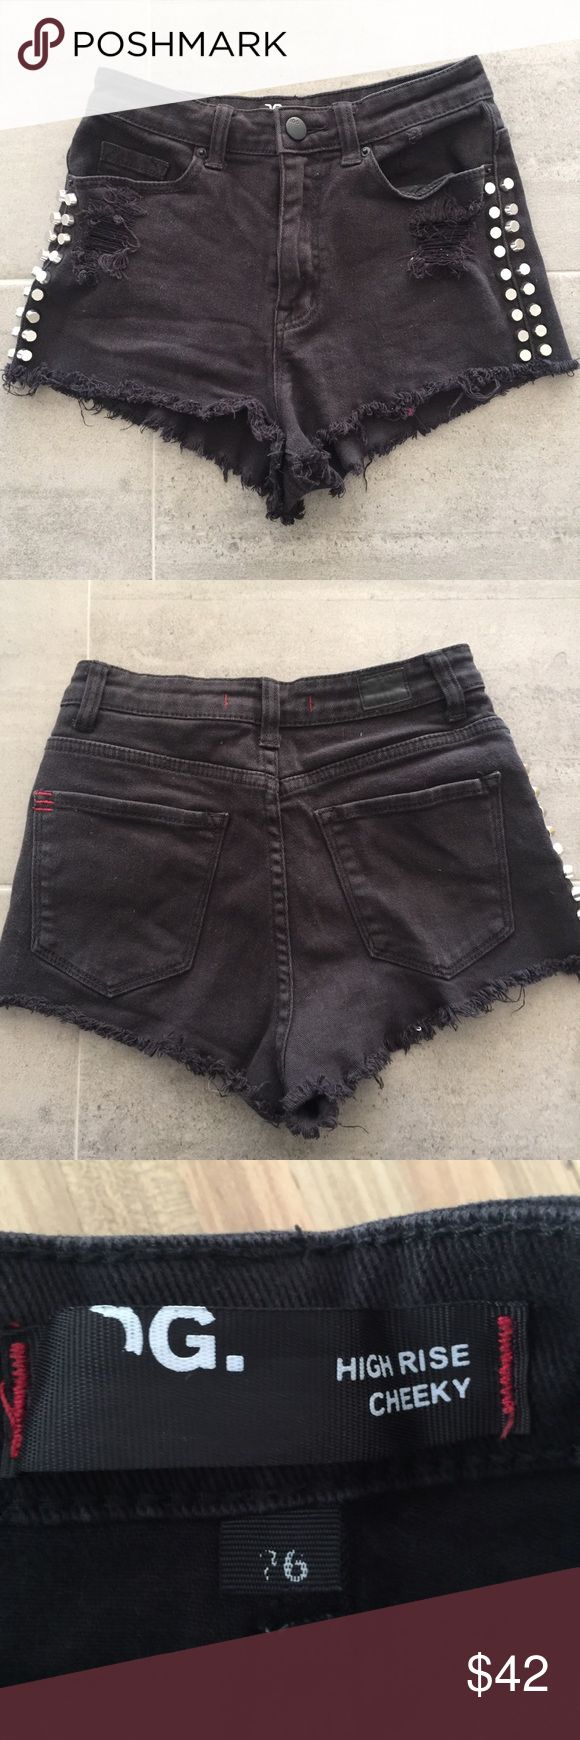 Urban Outfitters BDG denim shorts Urban Outfitters BDG High rise cheeky studded distressed denim shorts.  98 cotton / 2 spandex. Urban Outfitters Shorts Jean Shorts